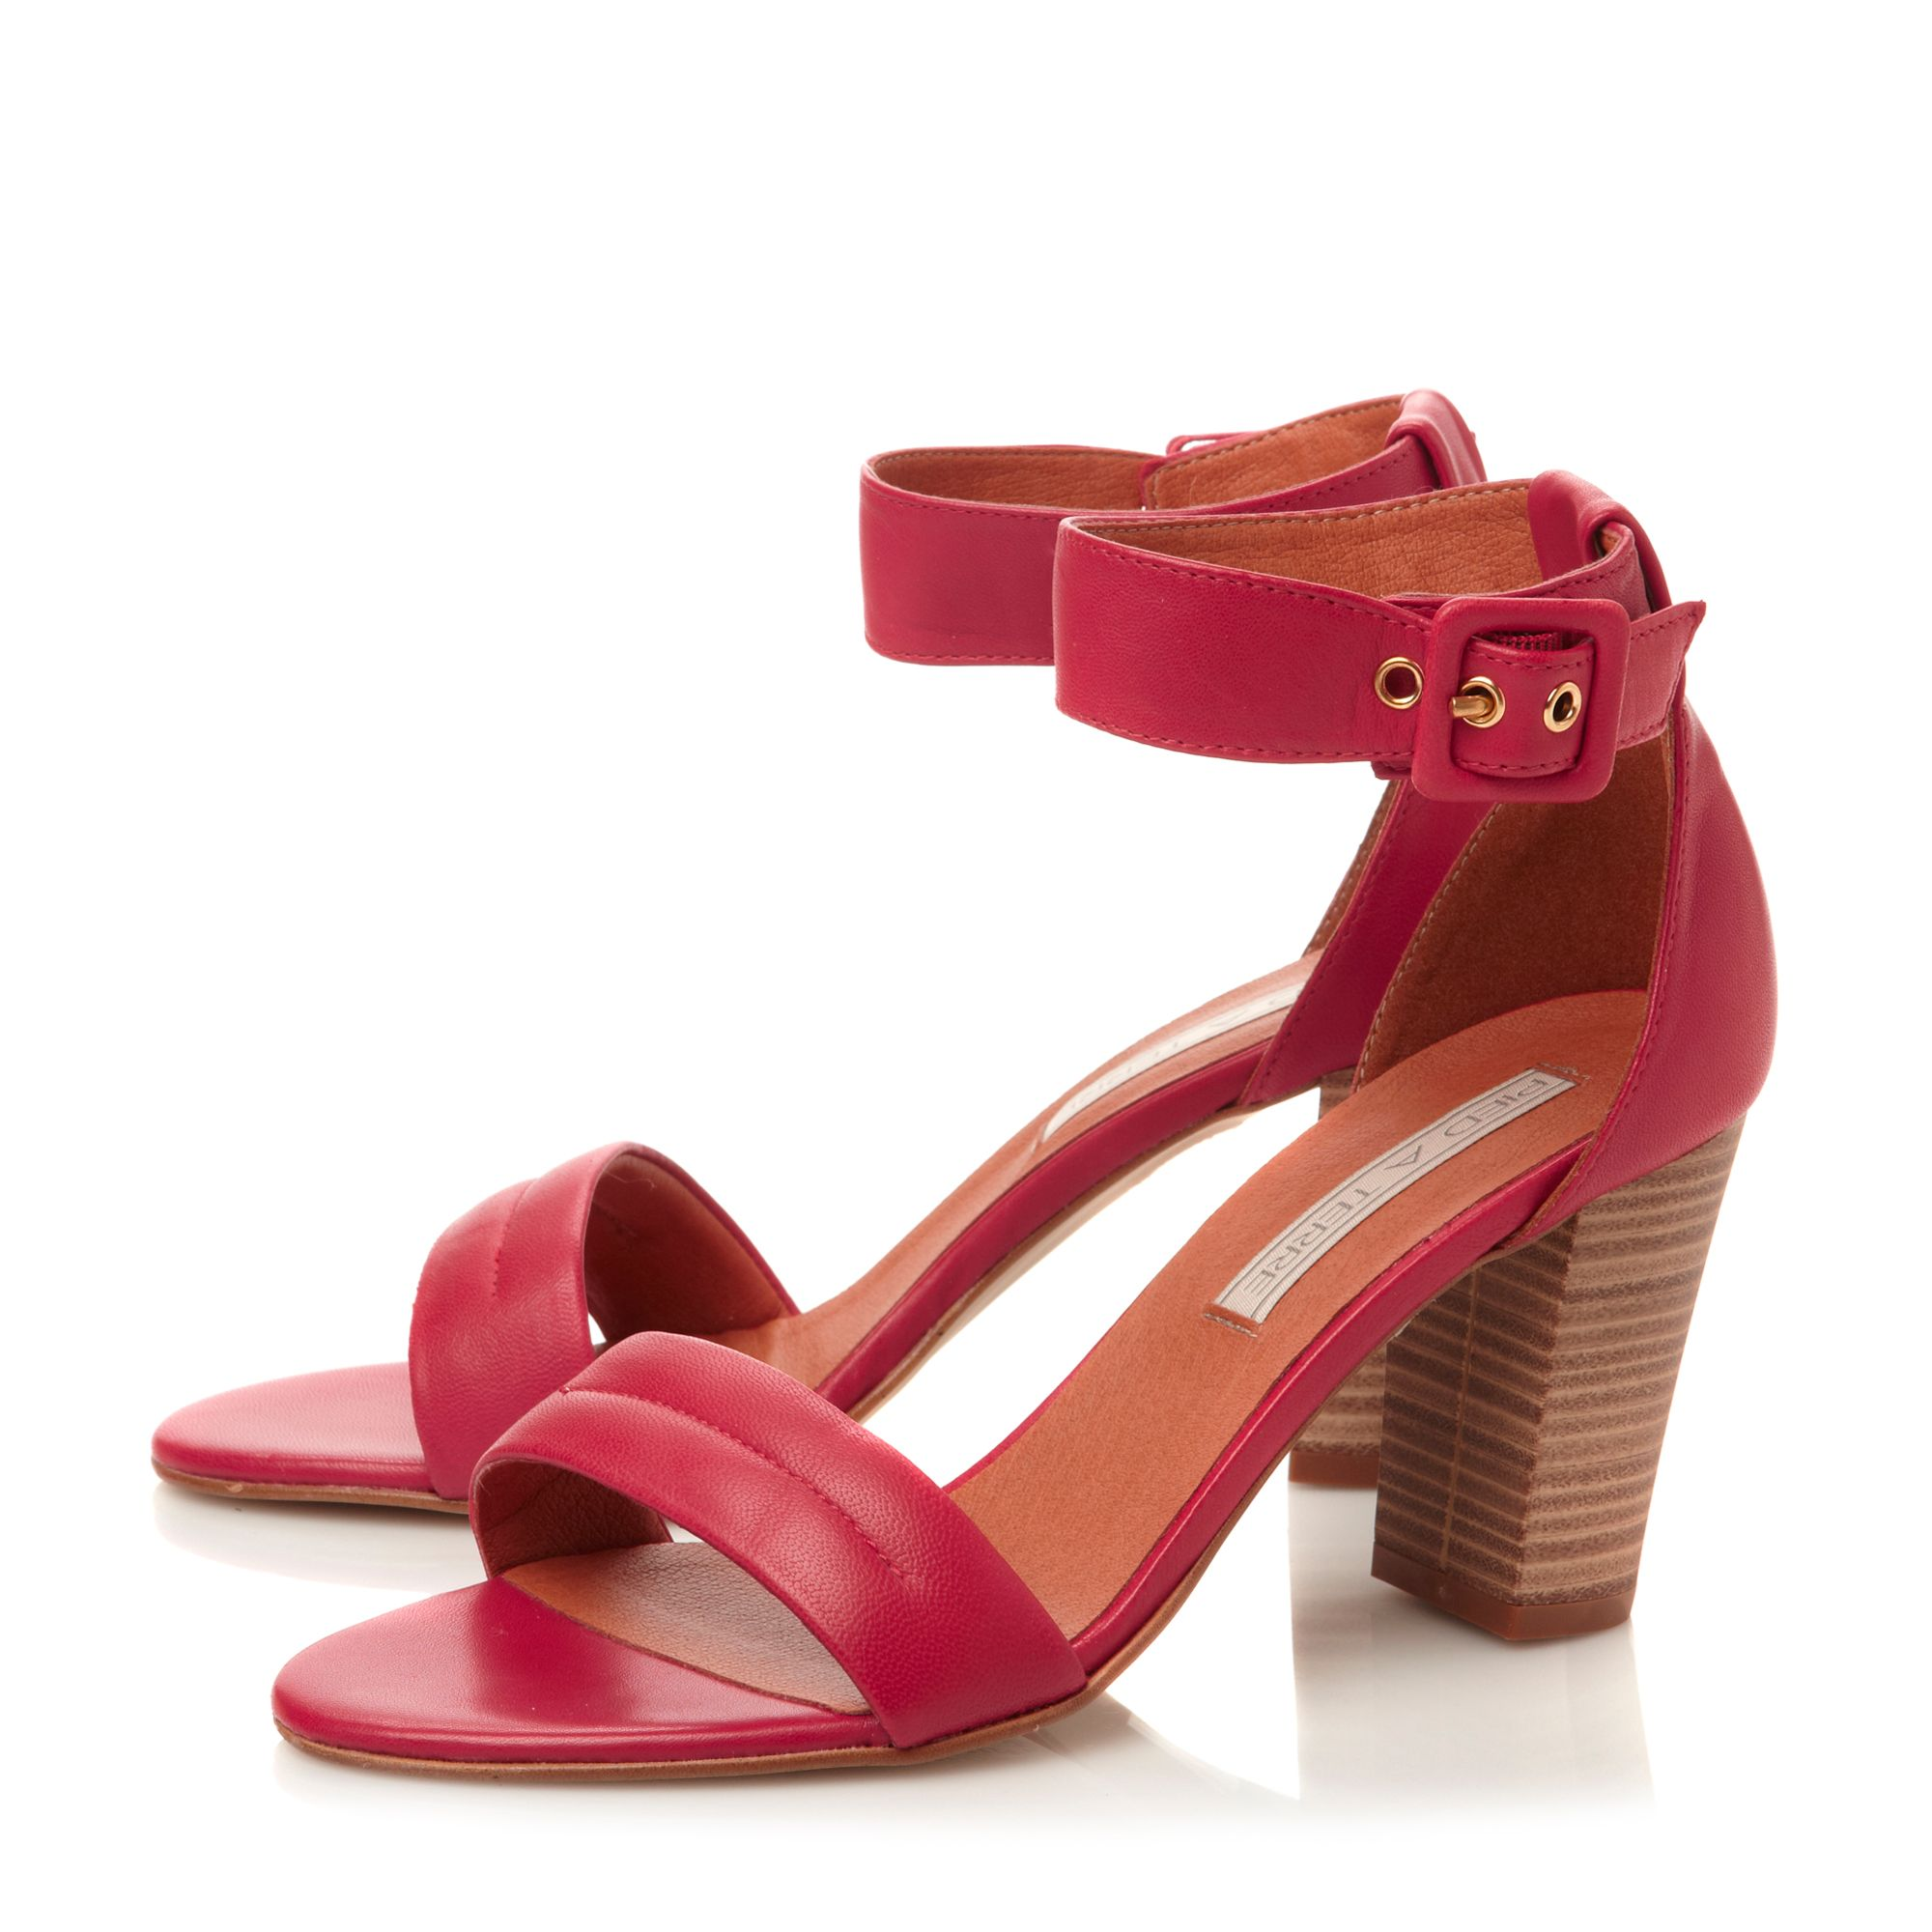 Fragrant 2 part block heel sandals